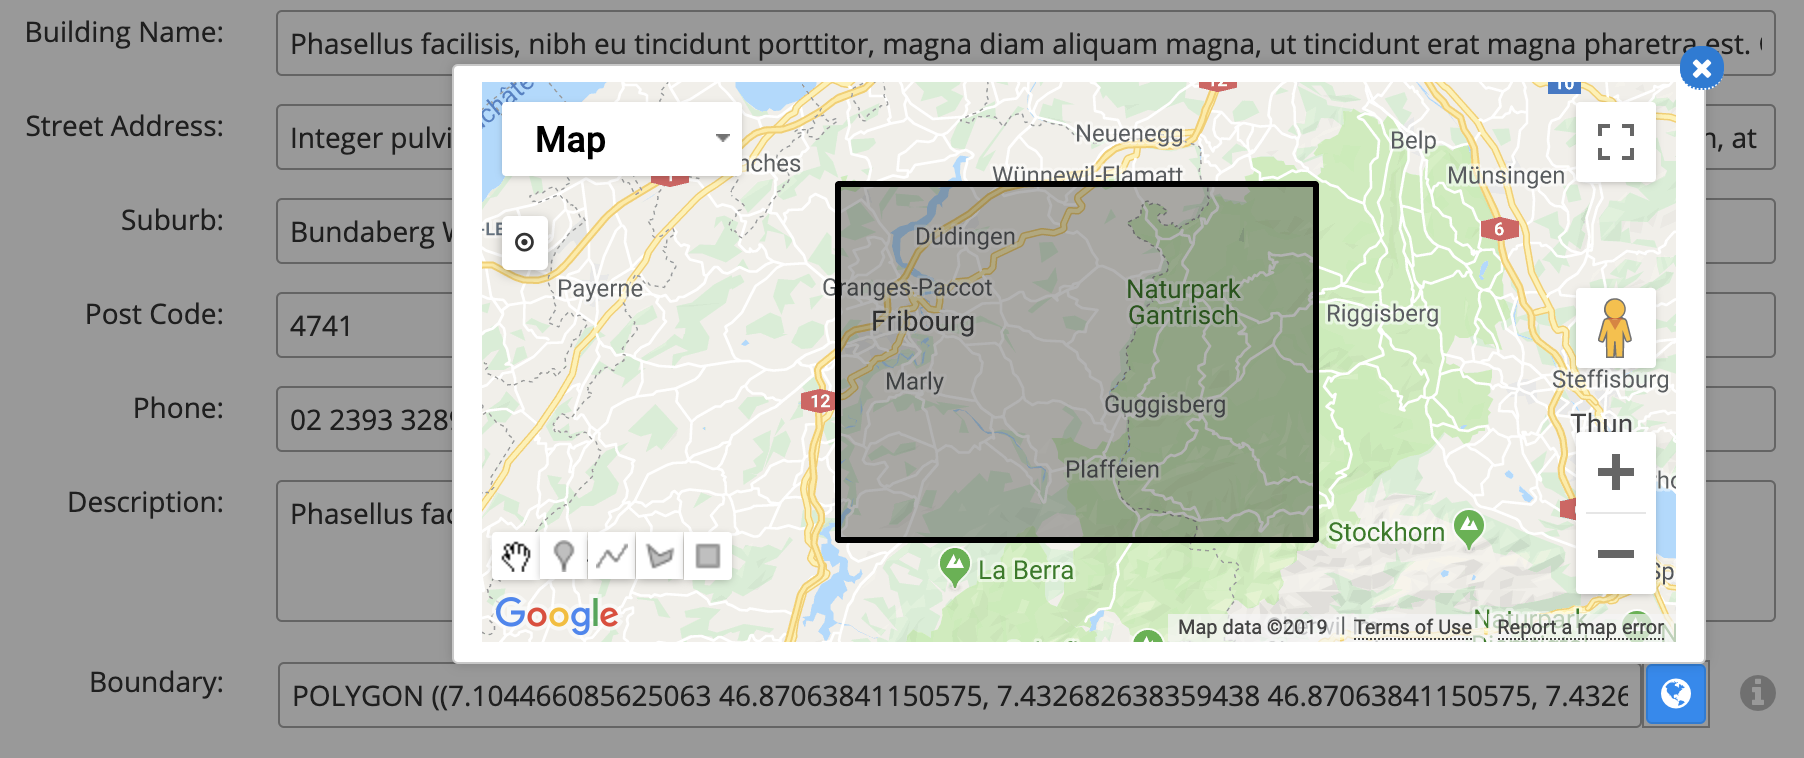 Google map in Skyve default interface